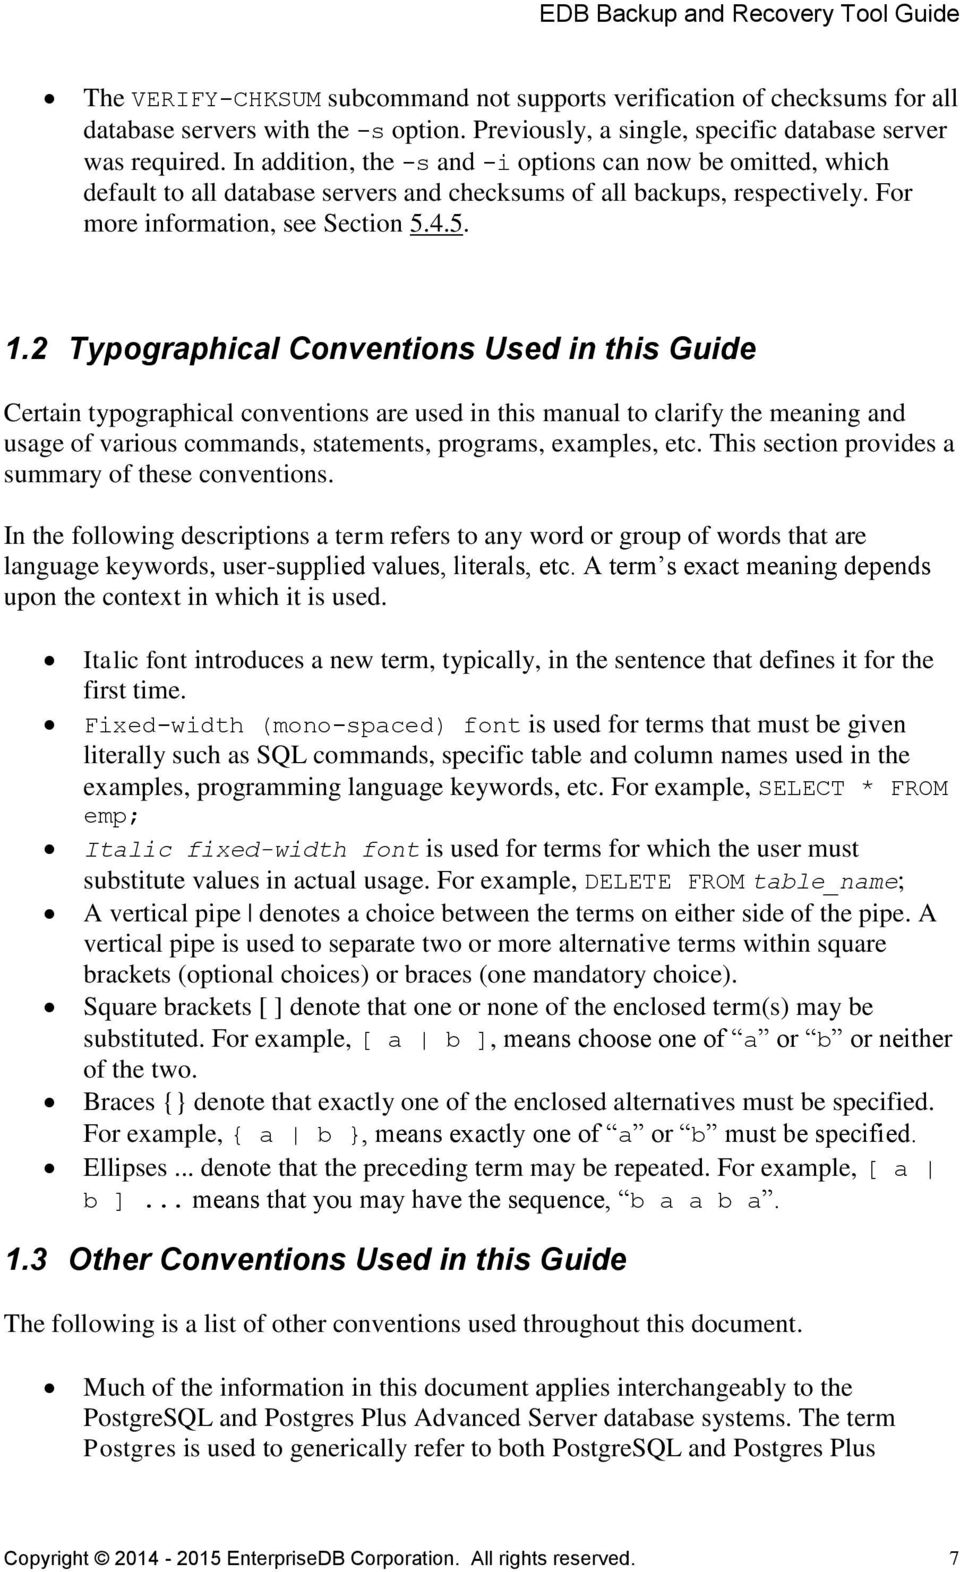 2 Typographical Conventions Used in this Guide Certain typographical conventions are used in this manual to clarify the meaning and usage of various commands, statements, programs, examples, etc.